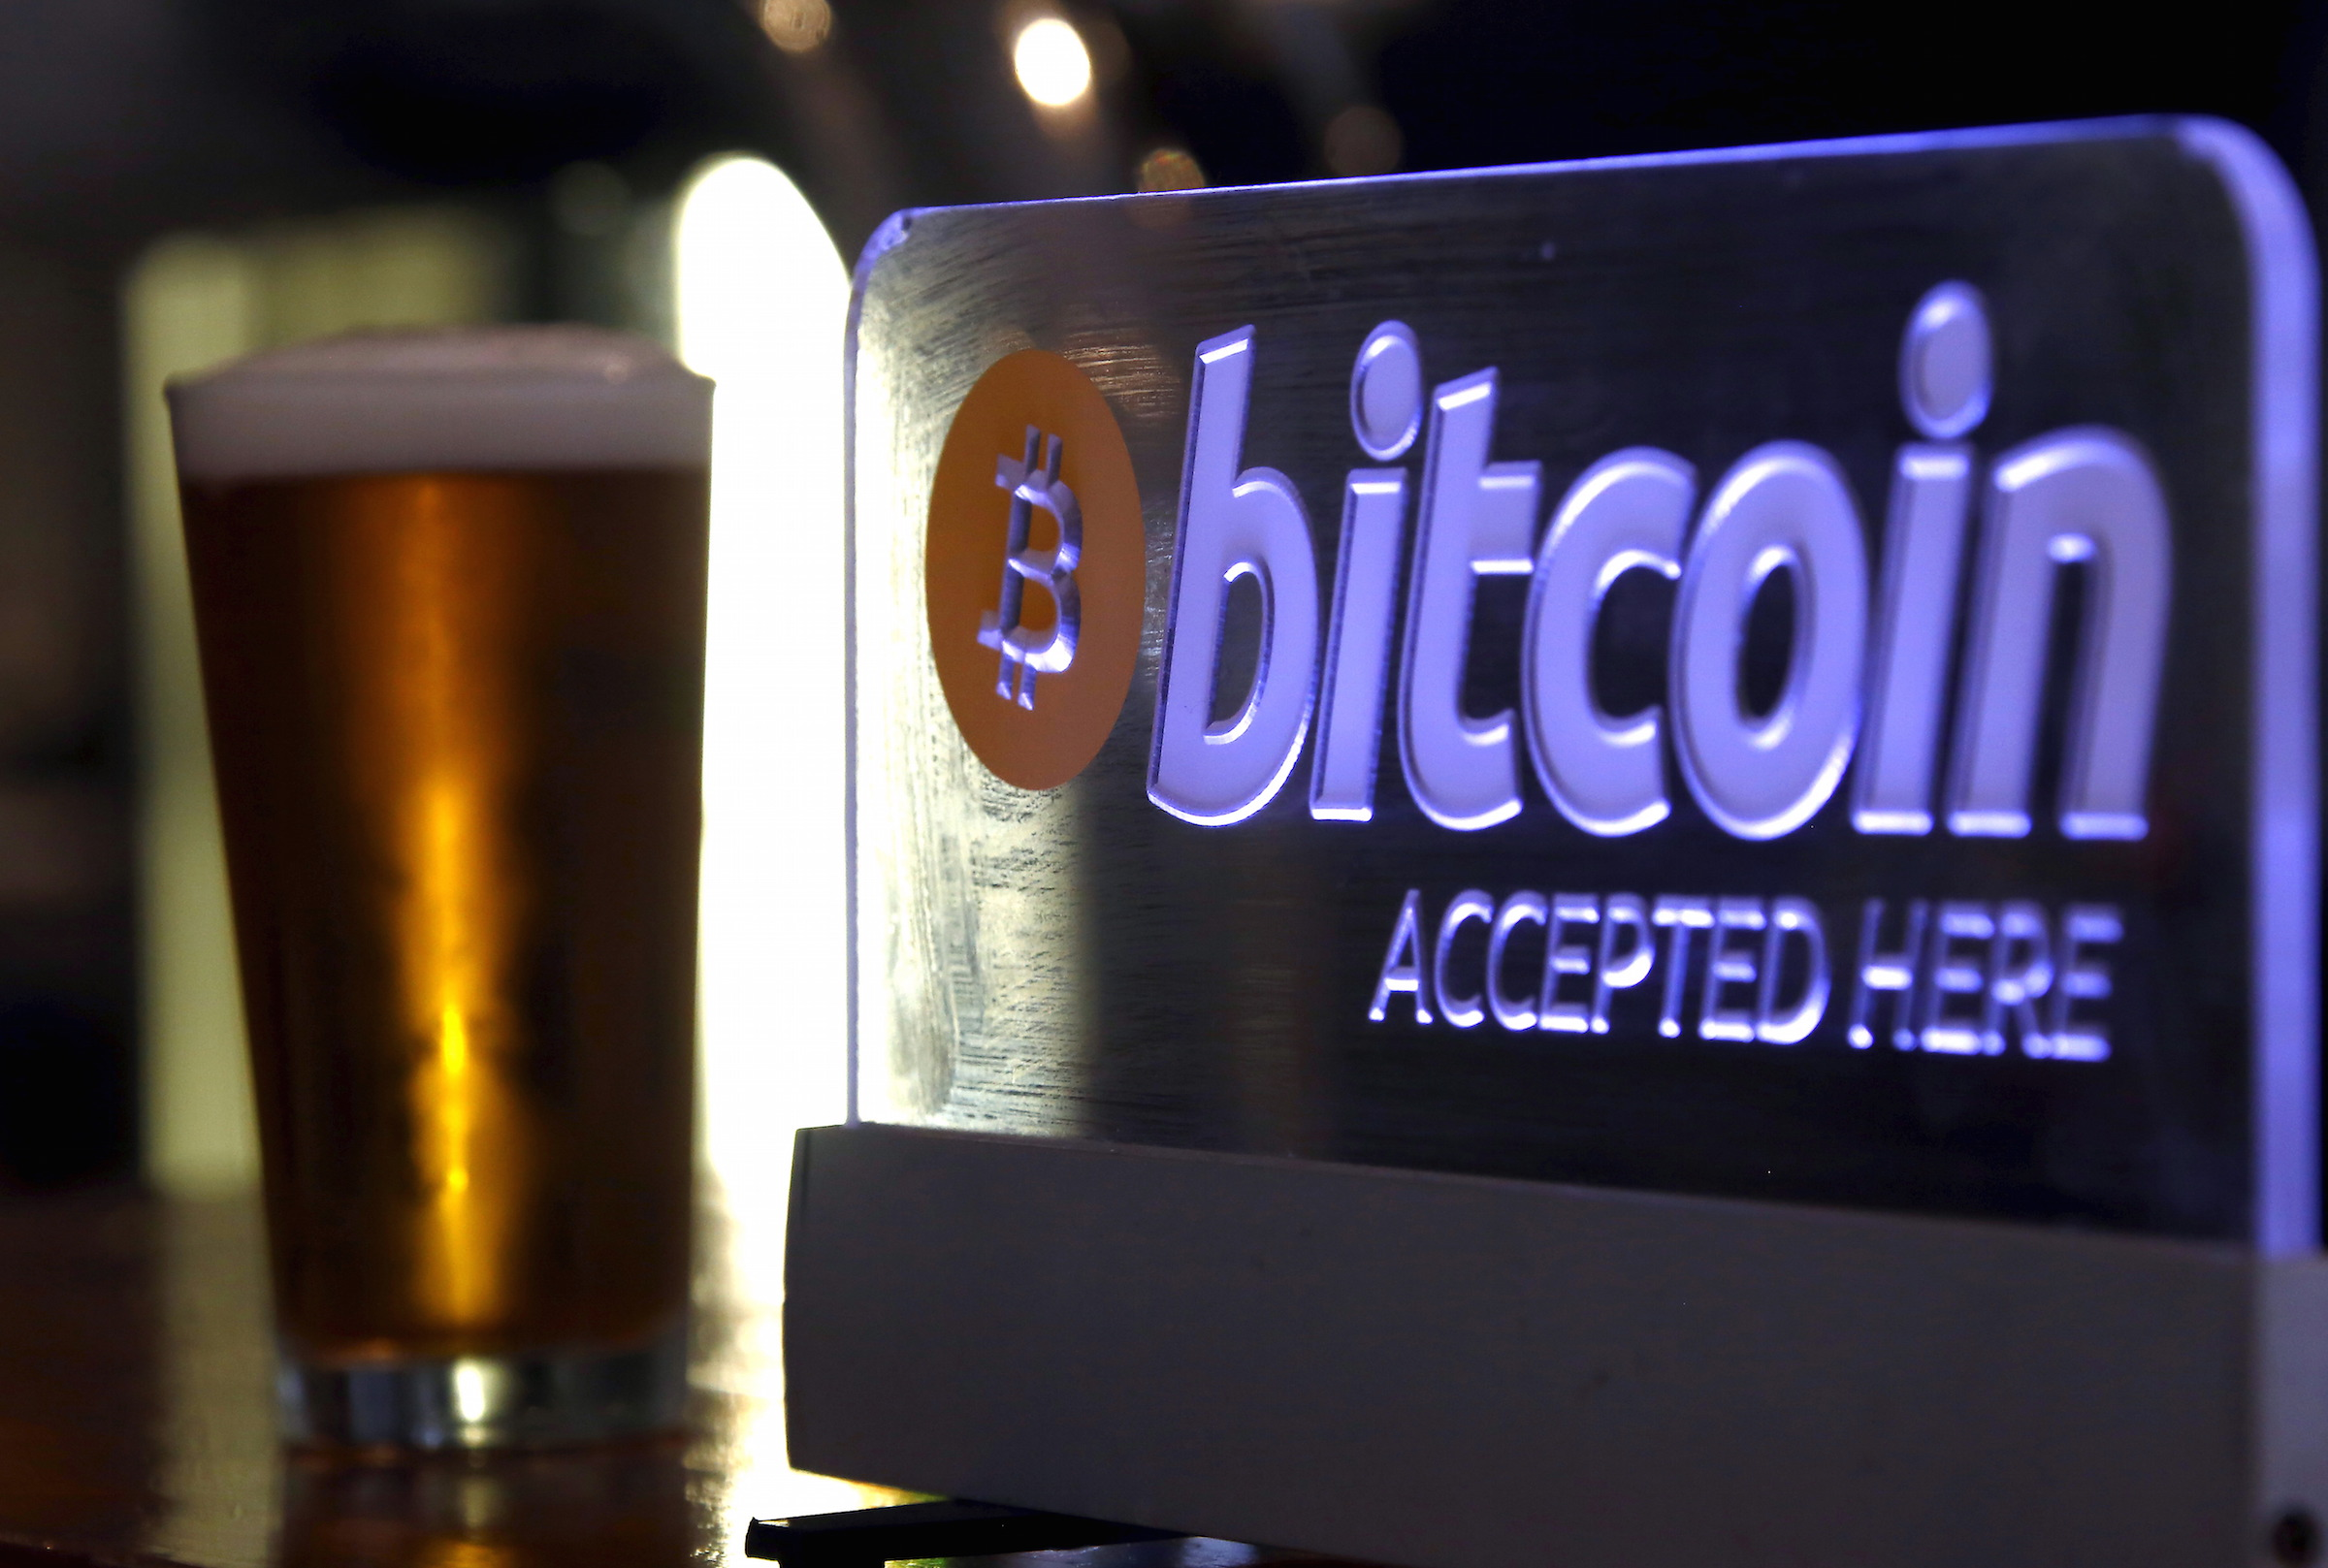 A beer poured for a customer sits on a bar next to a Bitcoin sign in central Sydney, Australia, September 29, 2015. Australian businesses are turning their backs on bitcoin, as signs grow that the cryptocurrency's mainstream appeal is fading. Concerns about bitcoin's potential crime links mean many businesses have stopped accepting it, a trend accelerated by Australian banks' move last month to close the accounts of 13 of the country's 17 bitcoin exchanges. Picture taken September 29, 2015. REUTERS/David Gray